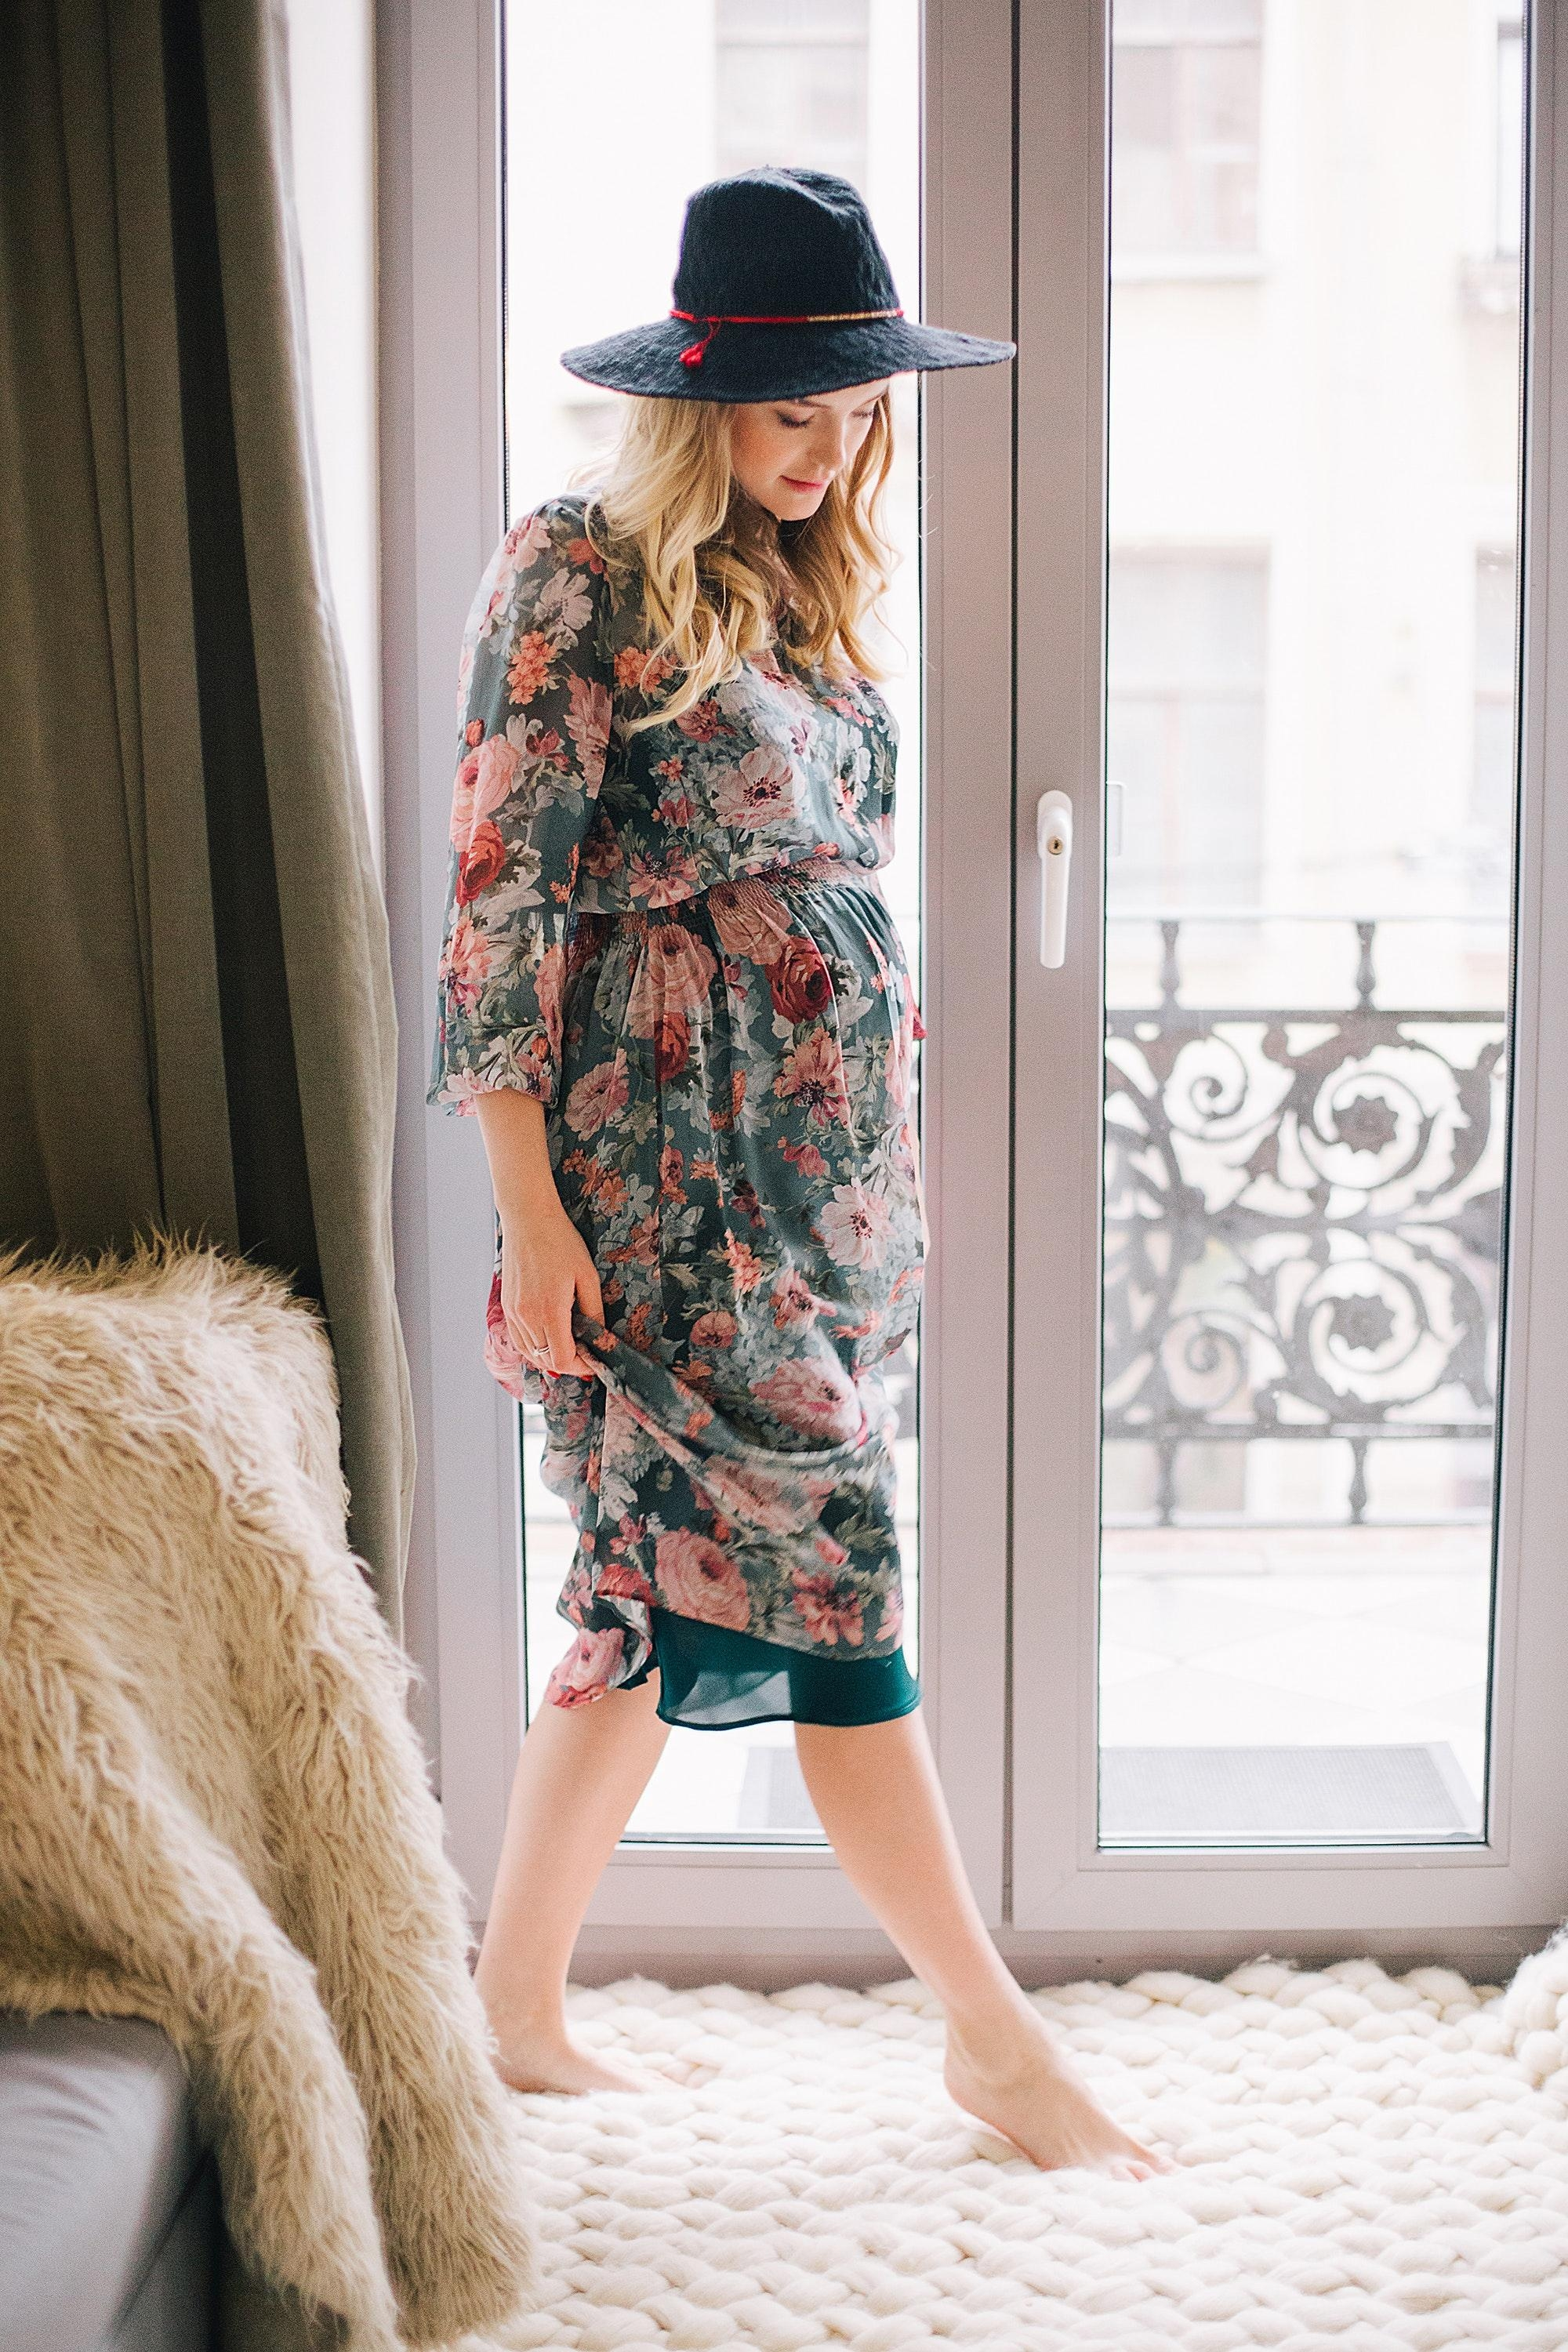 Pregnant with style #ootd #fashionchallenge #stylishbump #couchmagazin